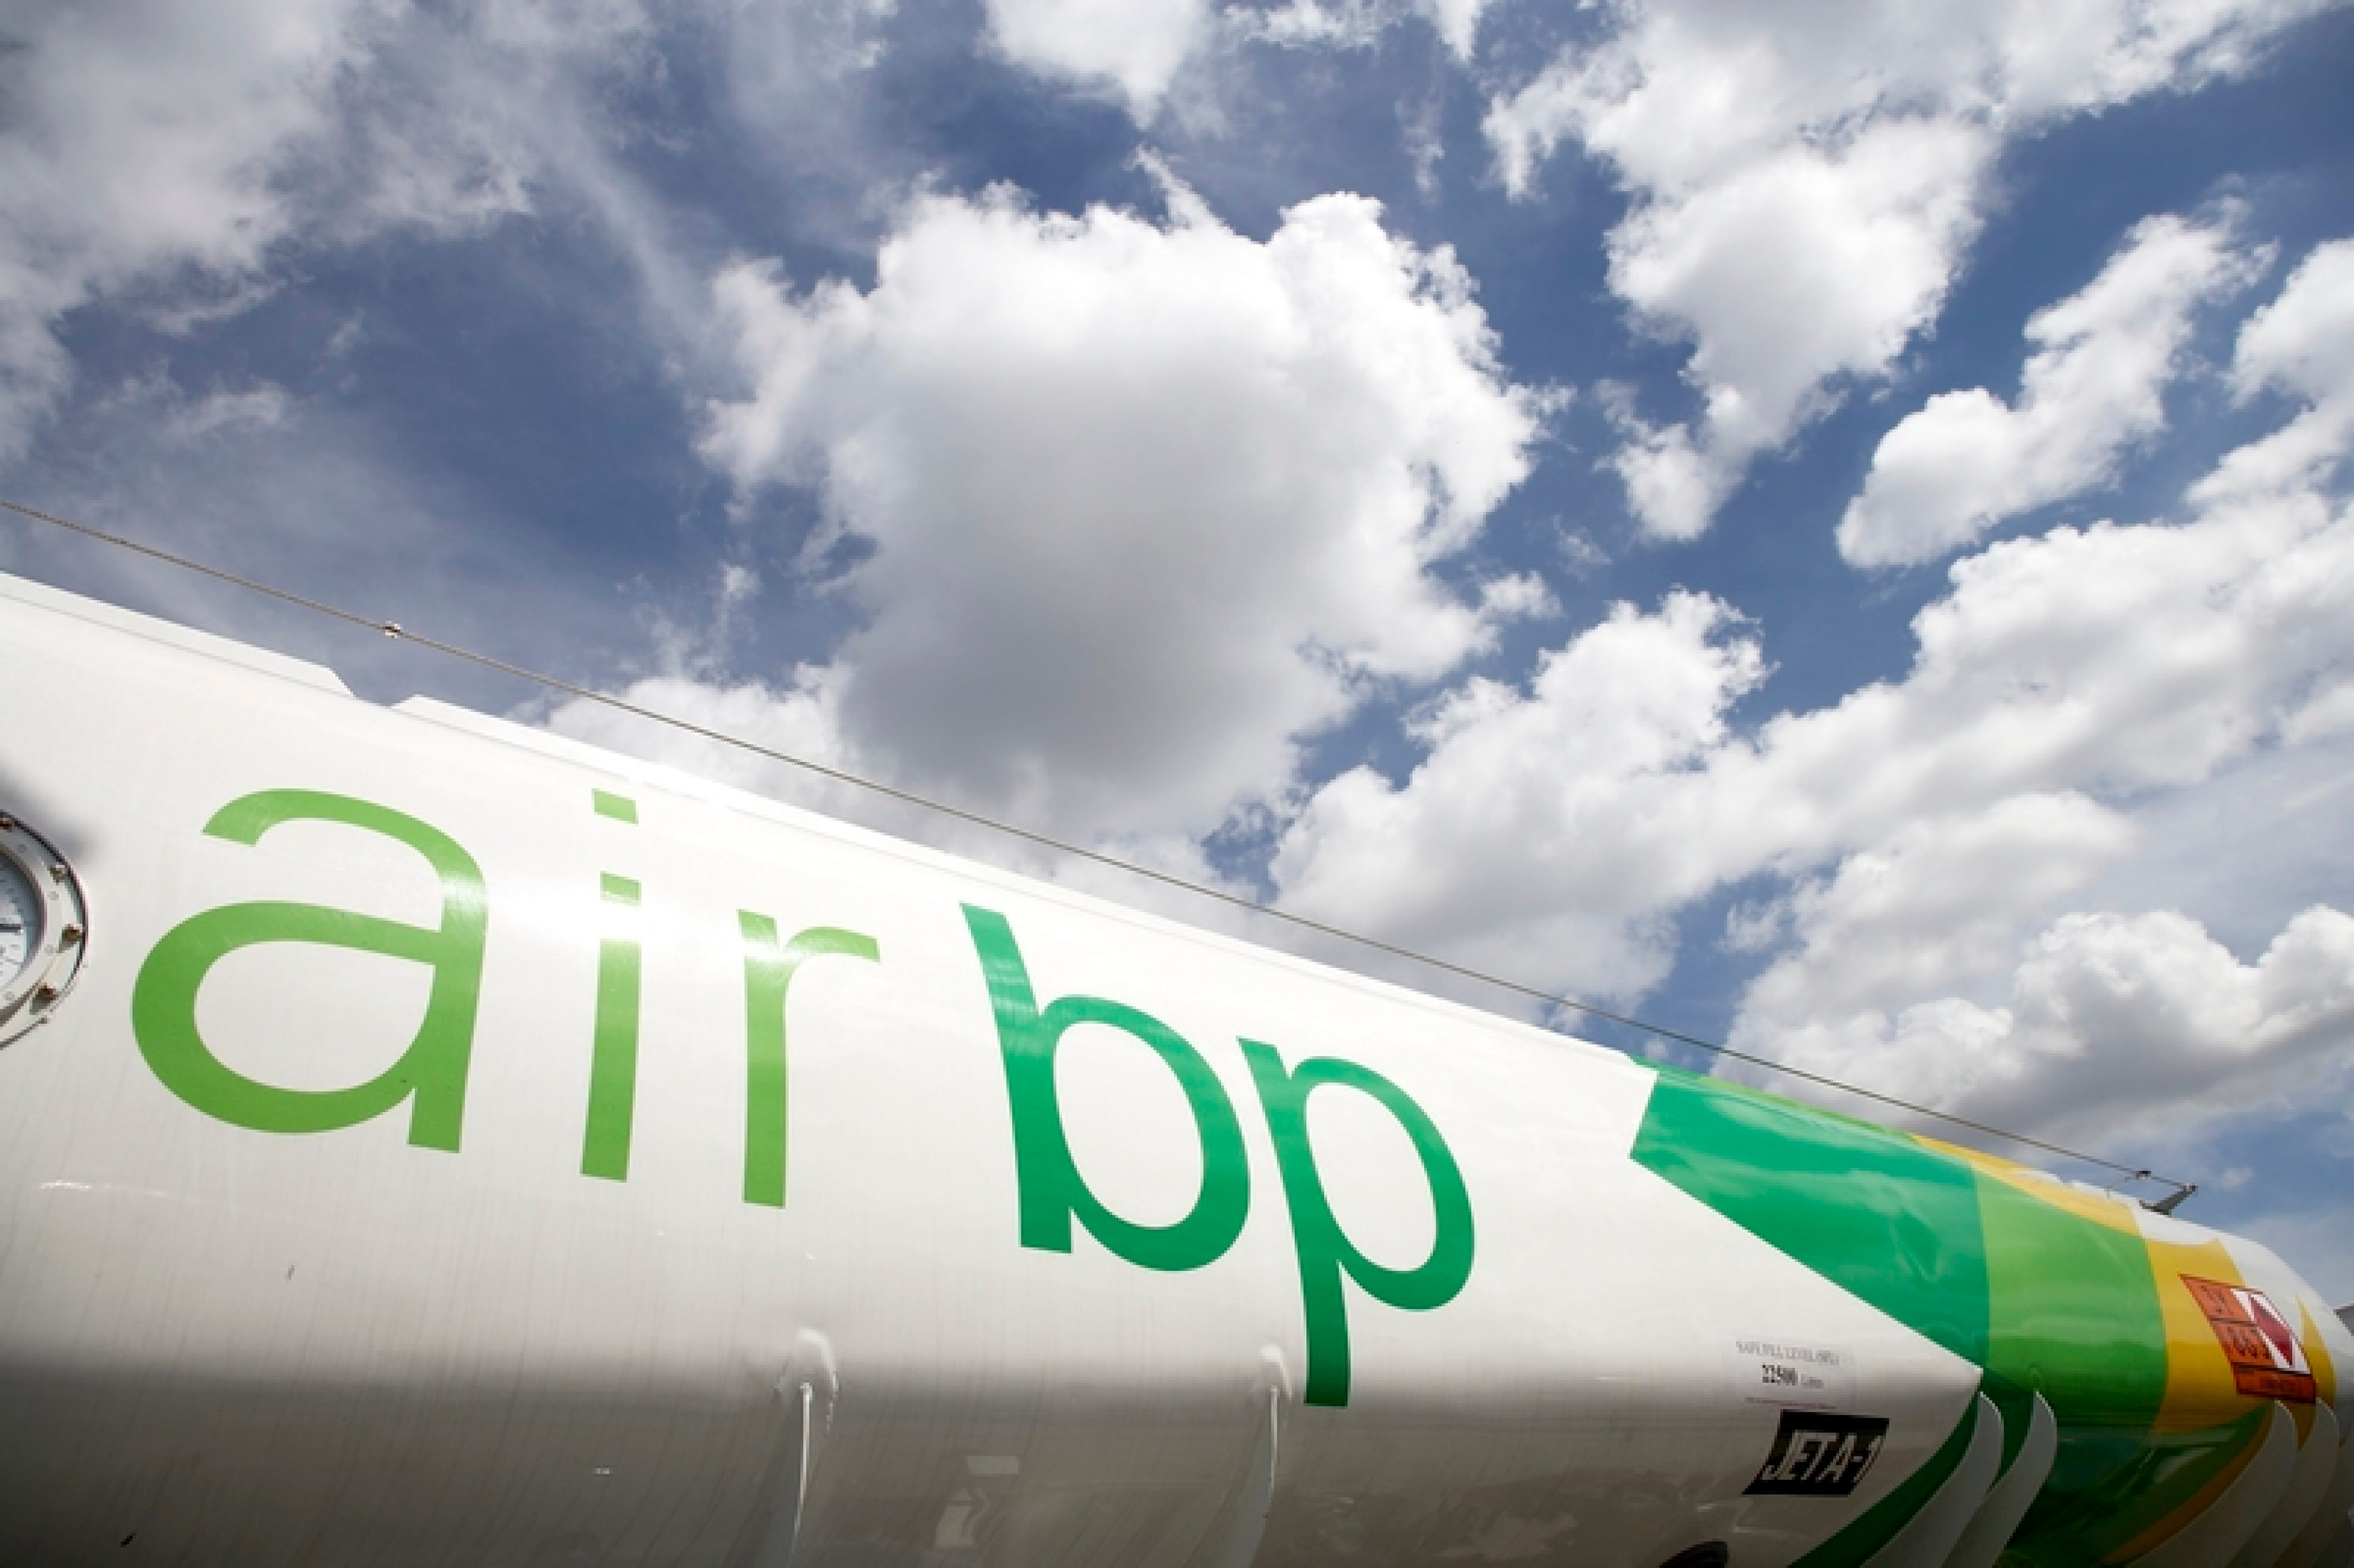 Air BP Branded Refuelling Vehicle in front of blue sky. London City Airport, UK.